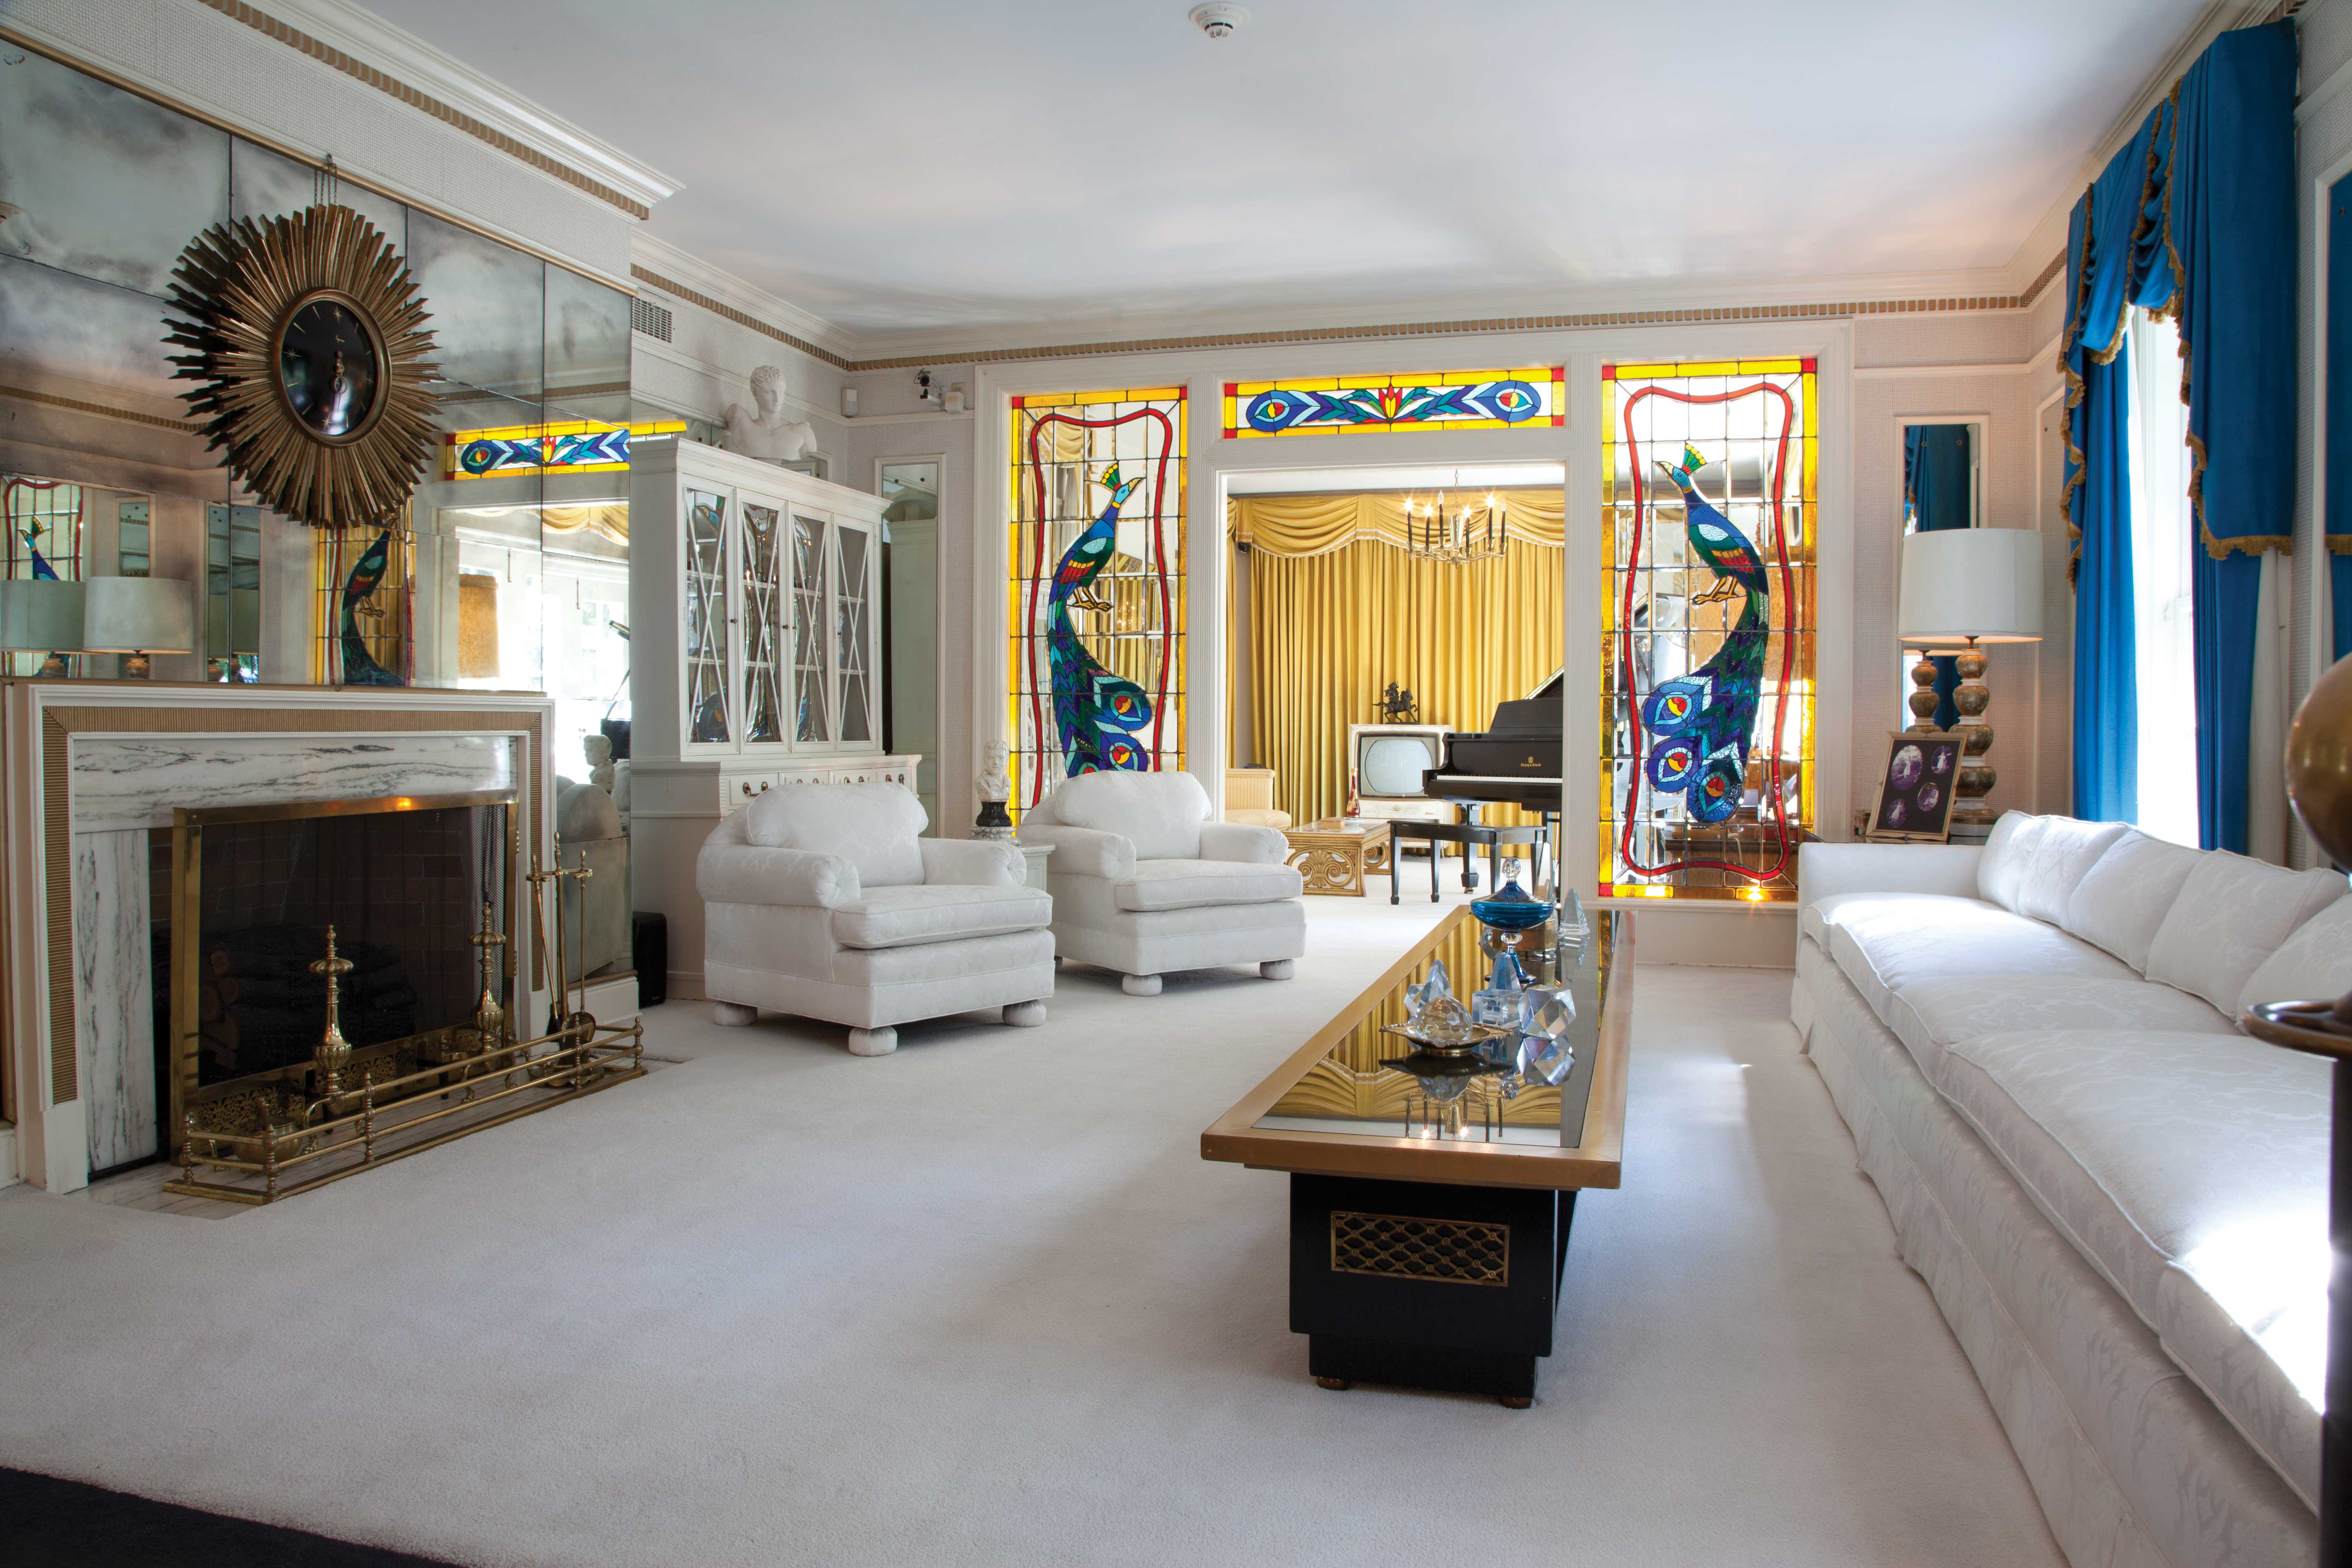 Pictures Of Graceland Elvis Private Rooms